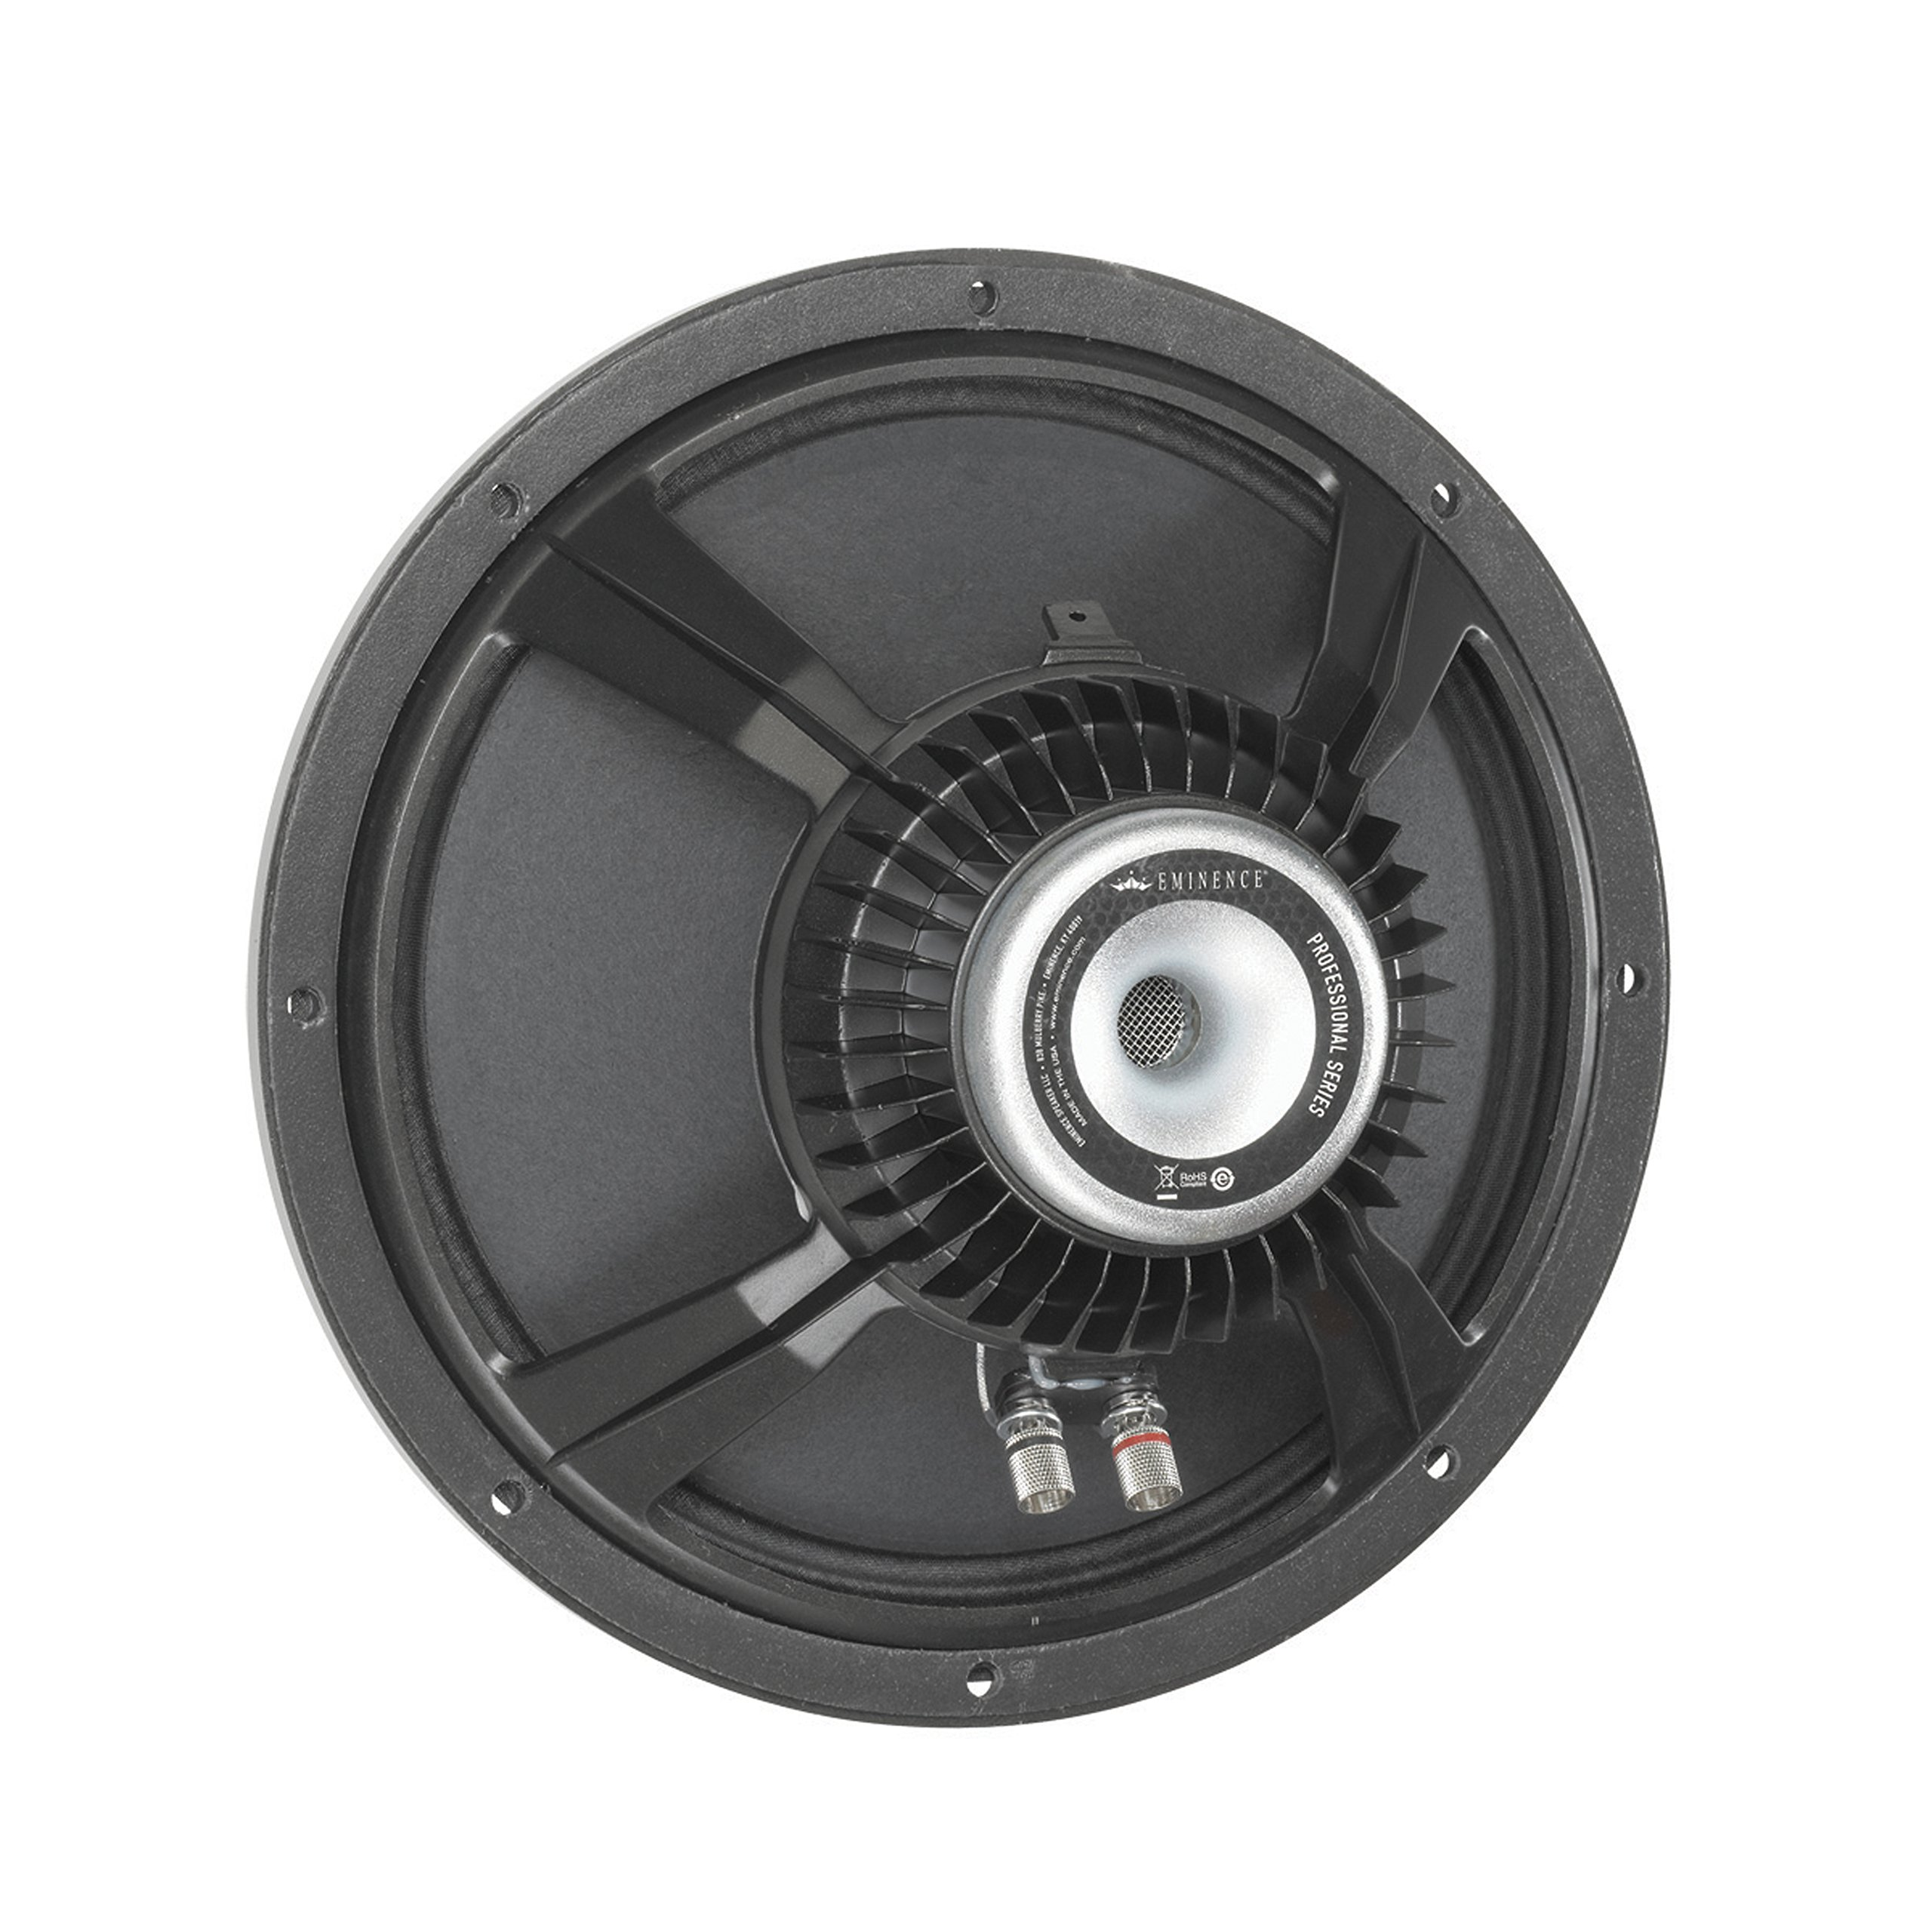 Eminence Deltalite 2512 12in 250W 8 Ohms